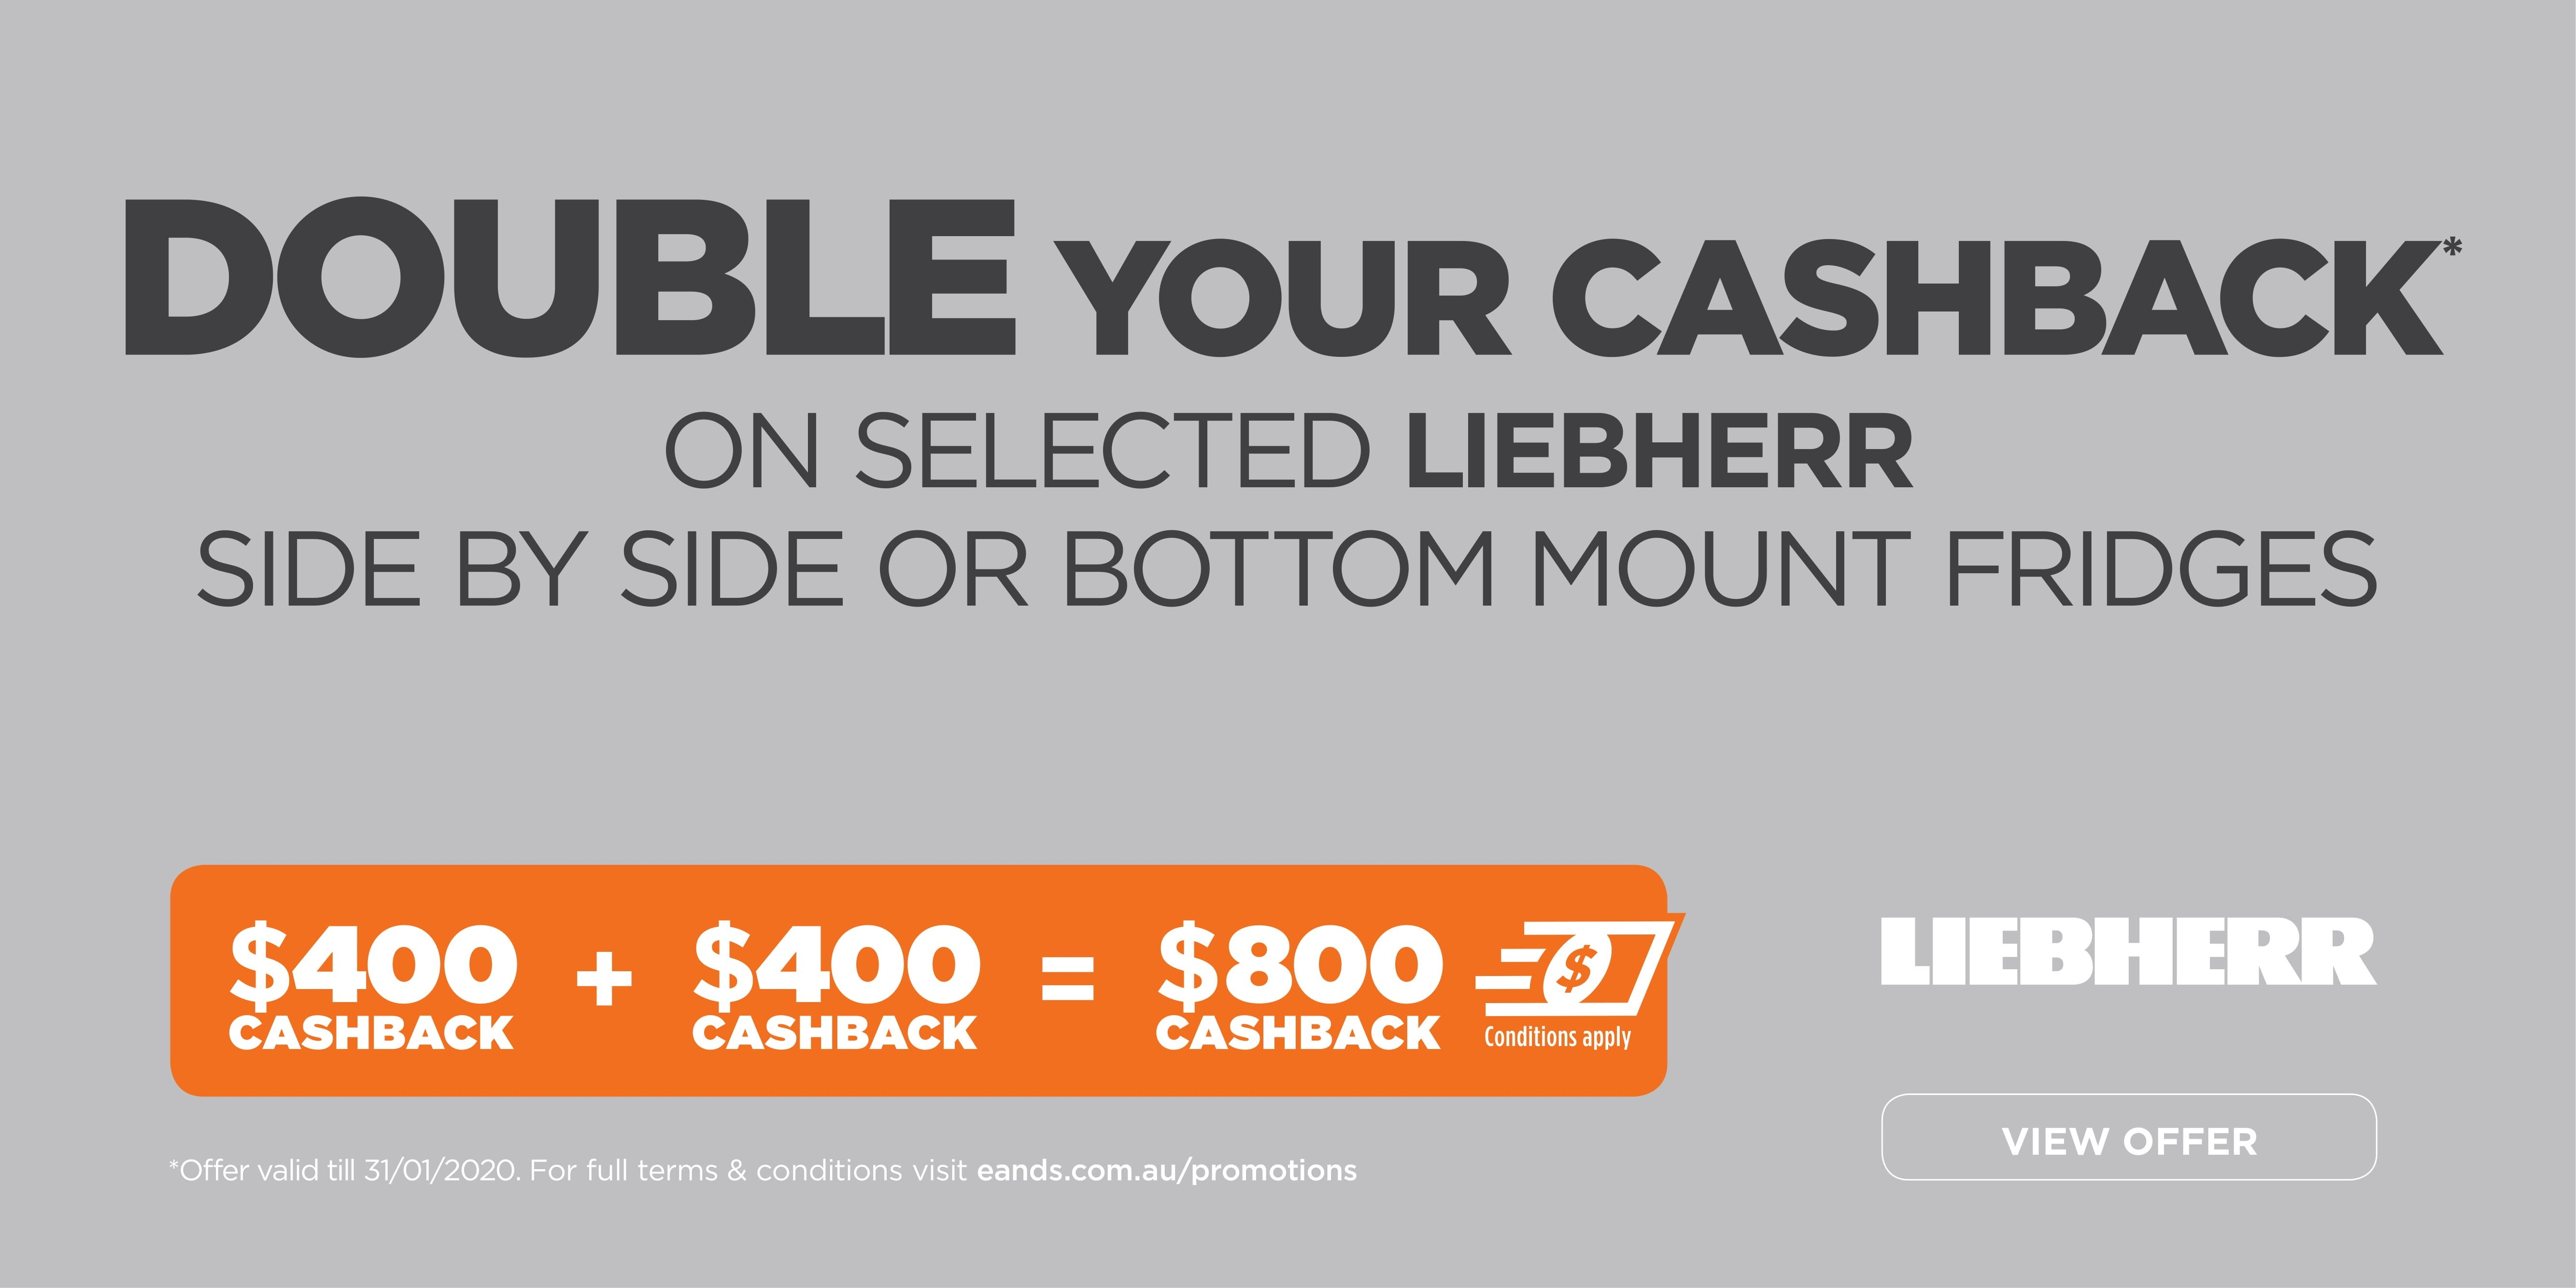 Double Cashback on selected Liebherr fridges. $400 + $400 = $800 Ends 31/01/2020. Terms and conditions apply